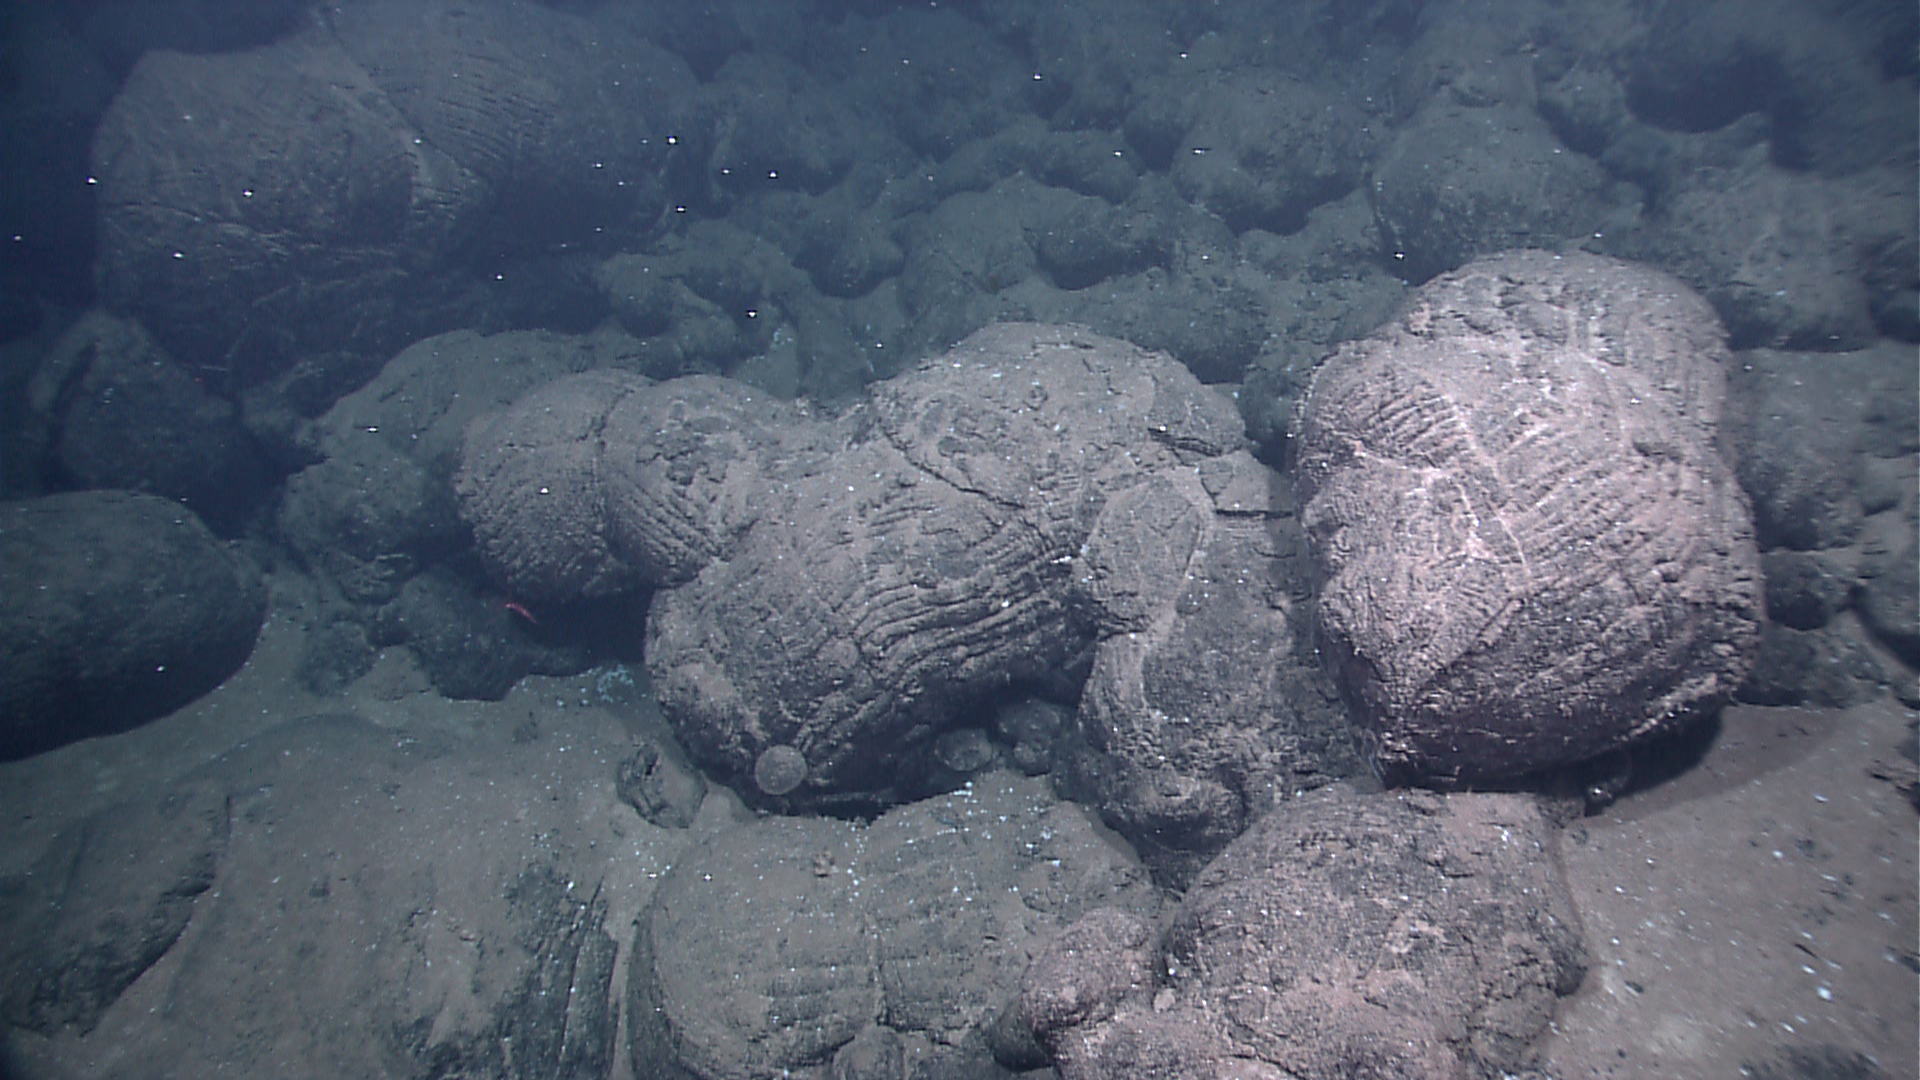 File Pillow Lava At Galapagos Rift 01 Jpg Wikimedia Commons